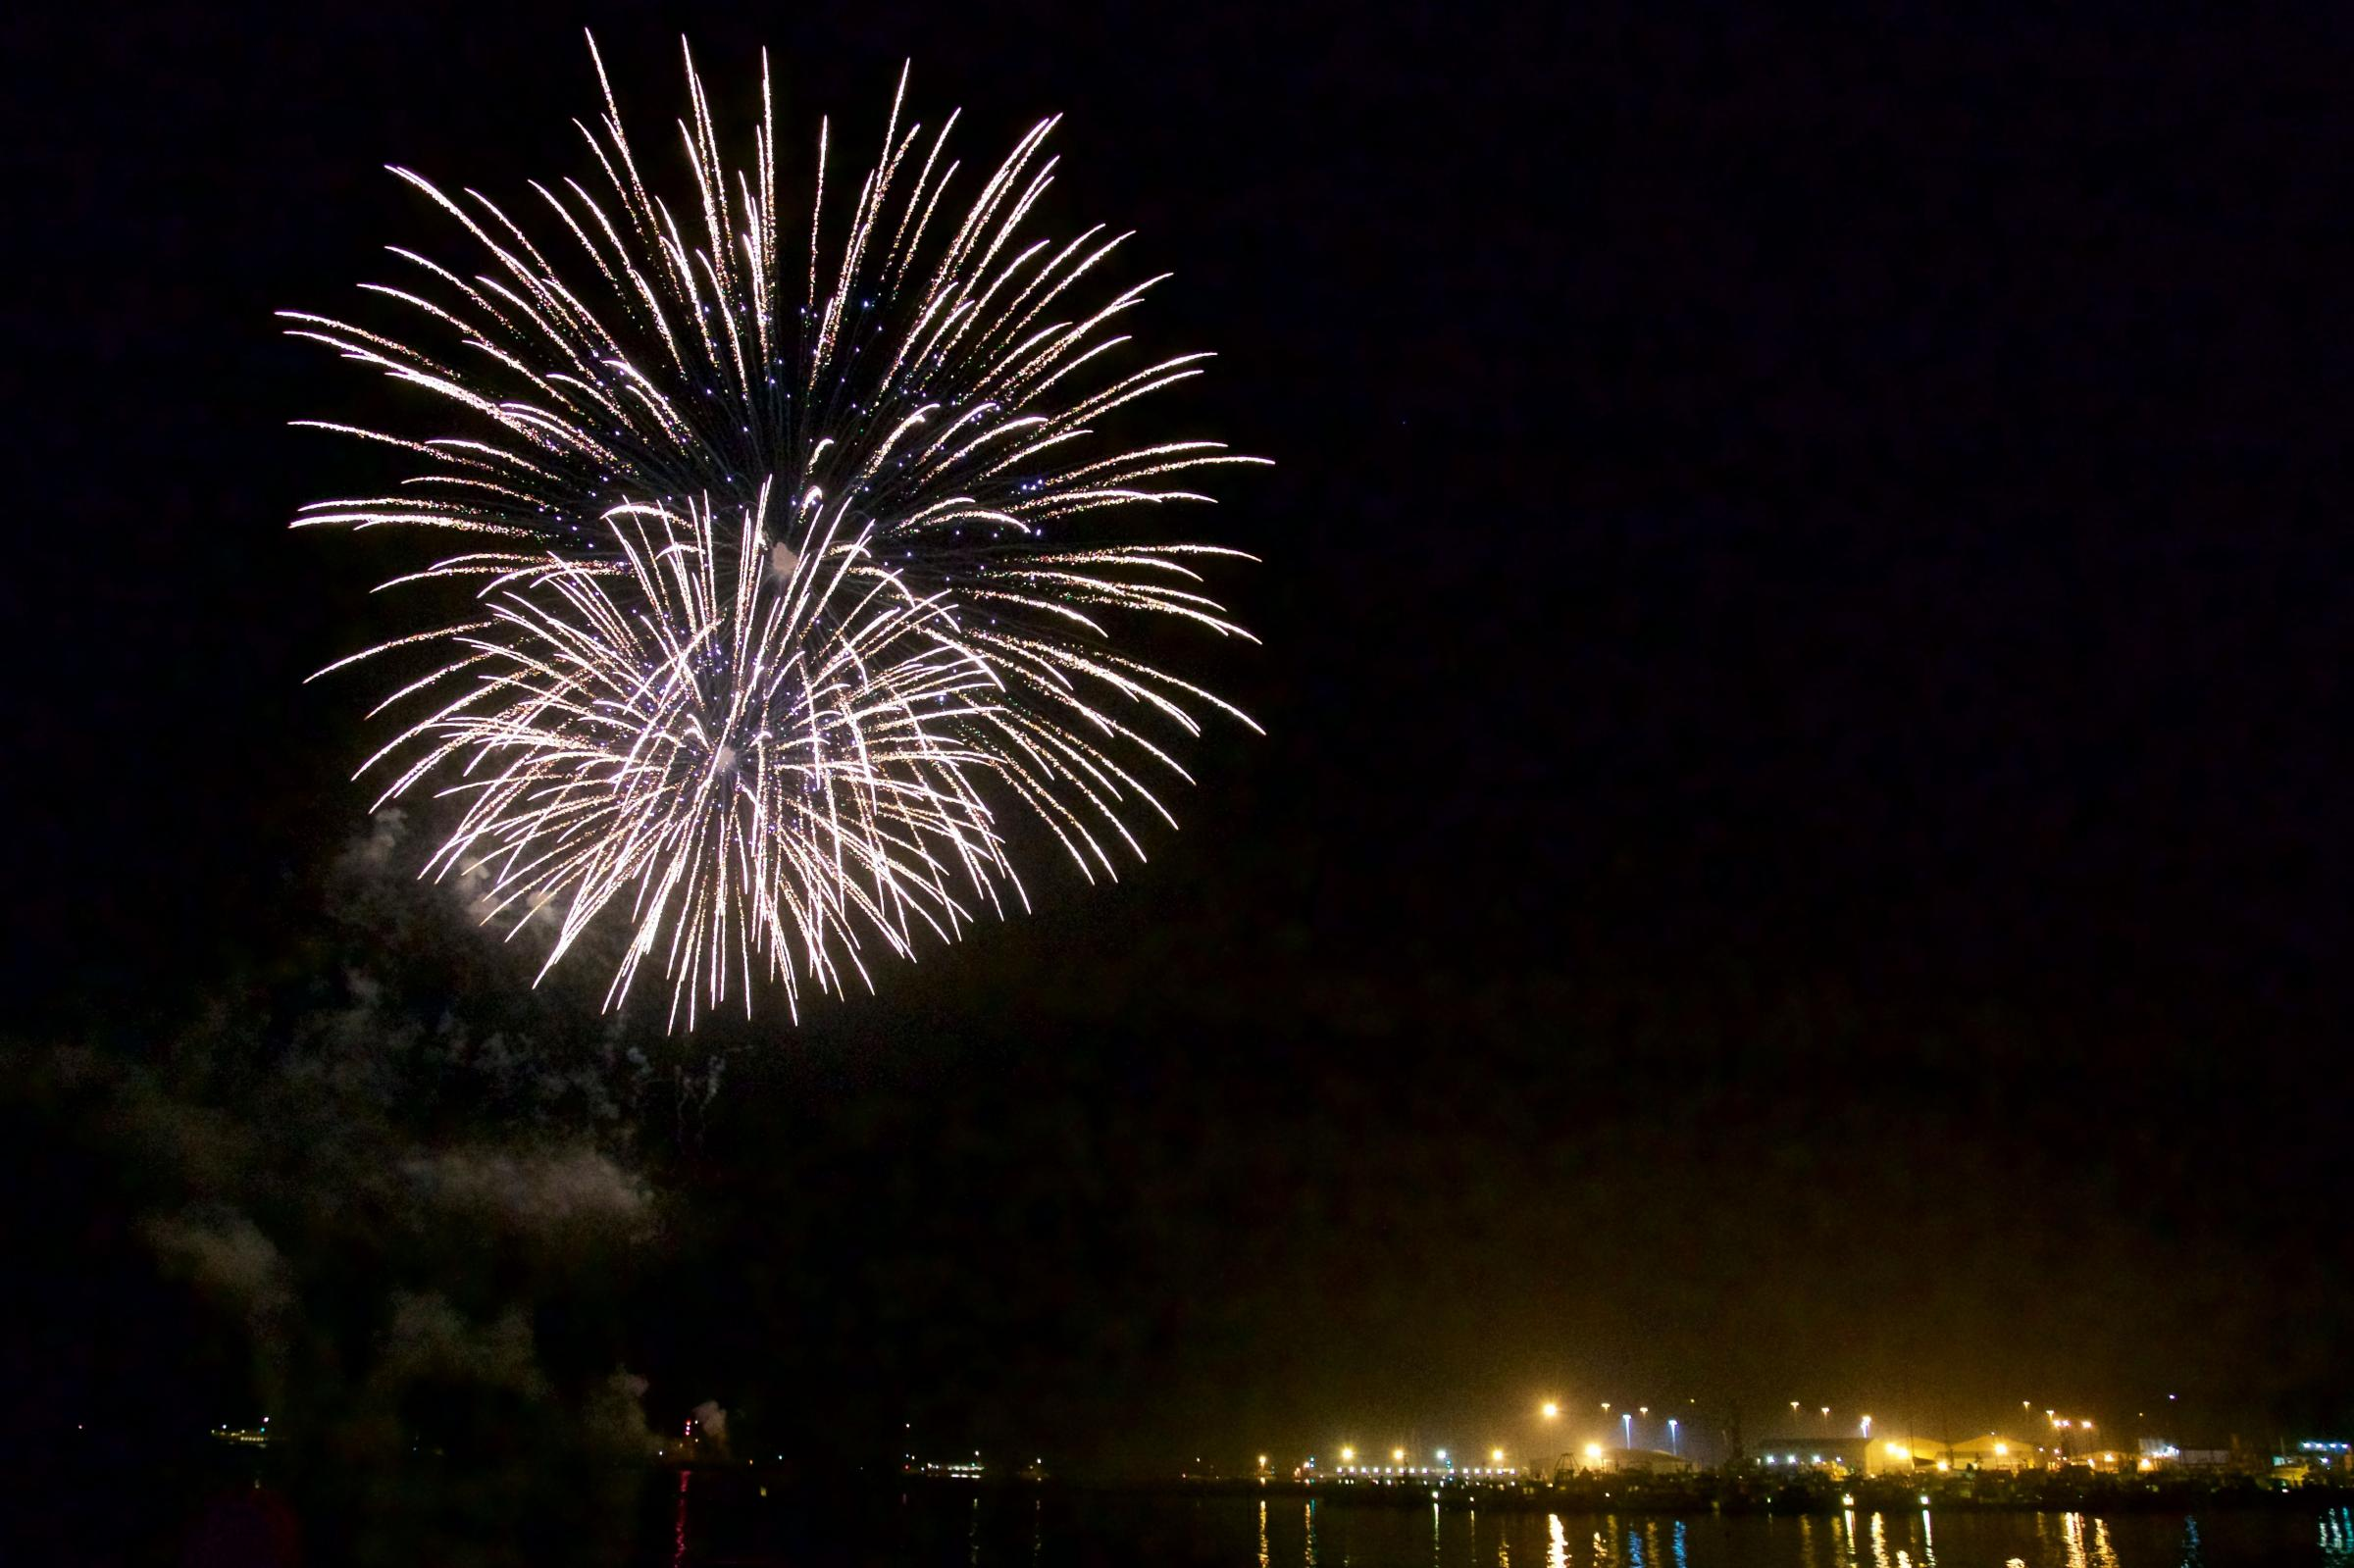 Firework display on Poole Quay for Bonfire Night